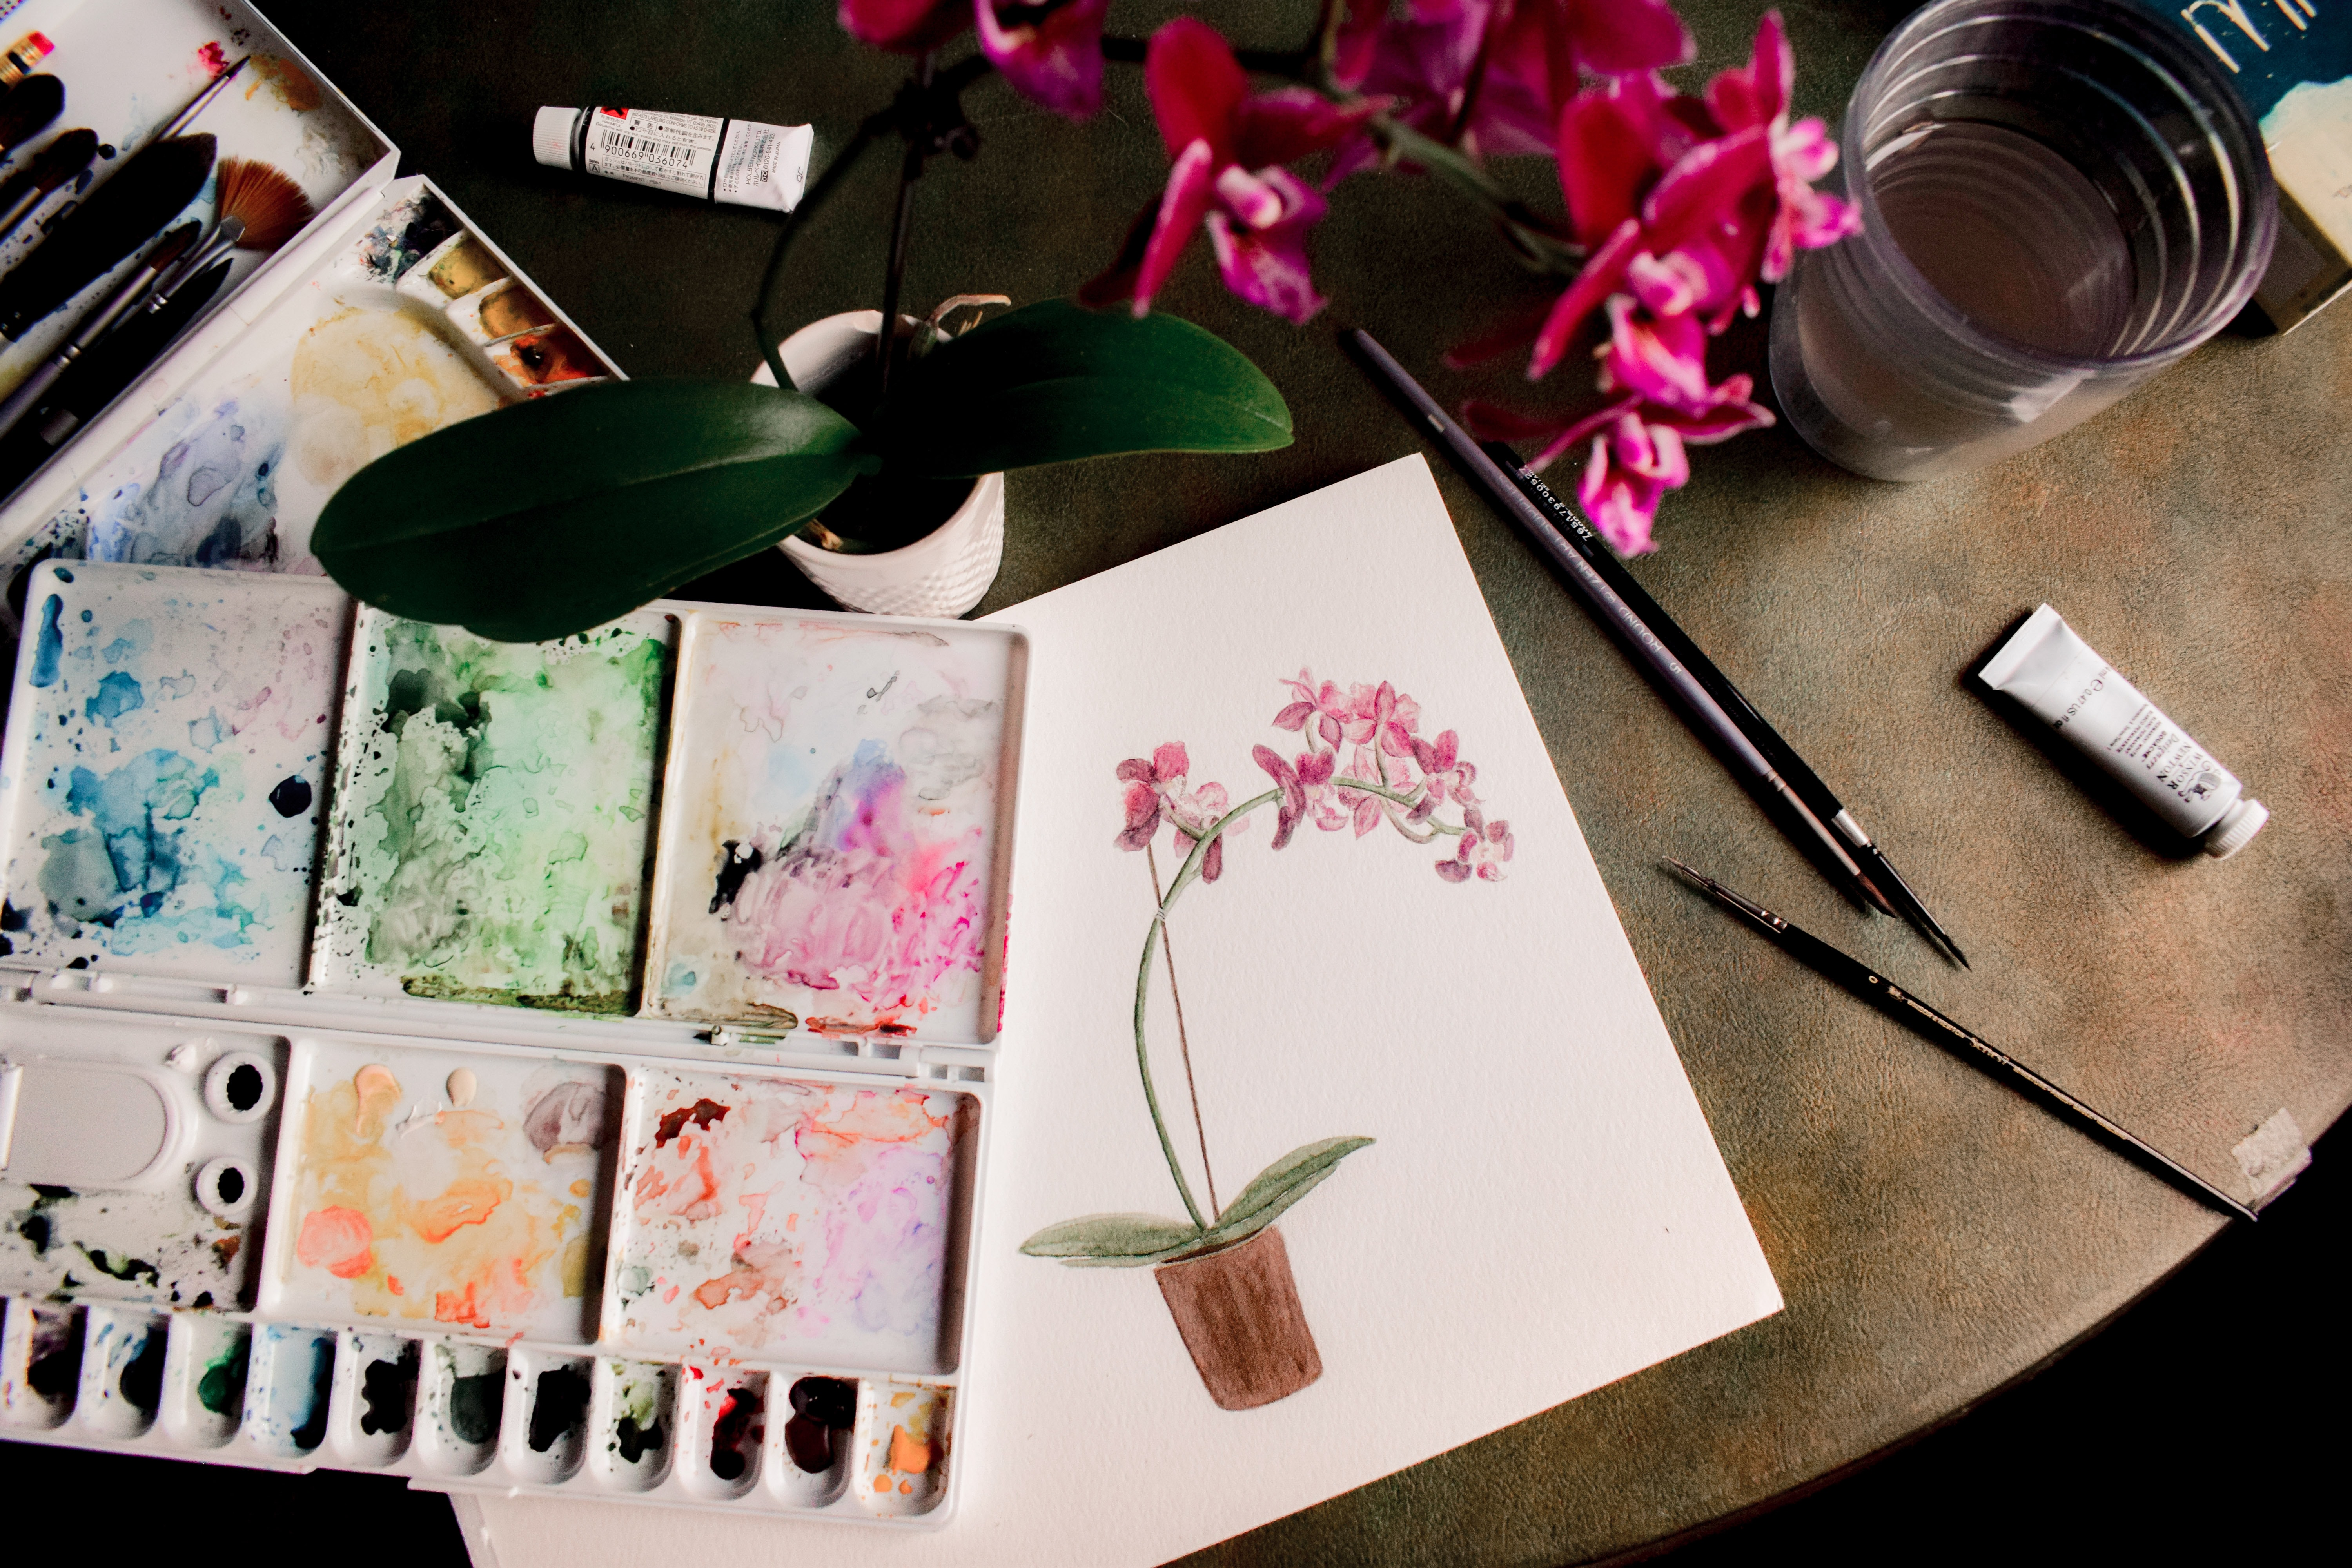 painted images of flowers